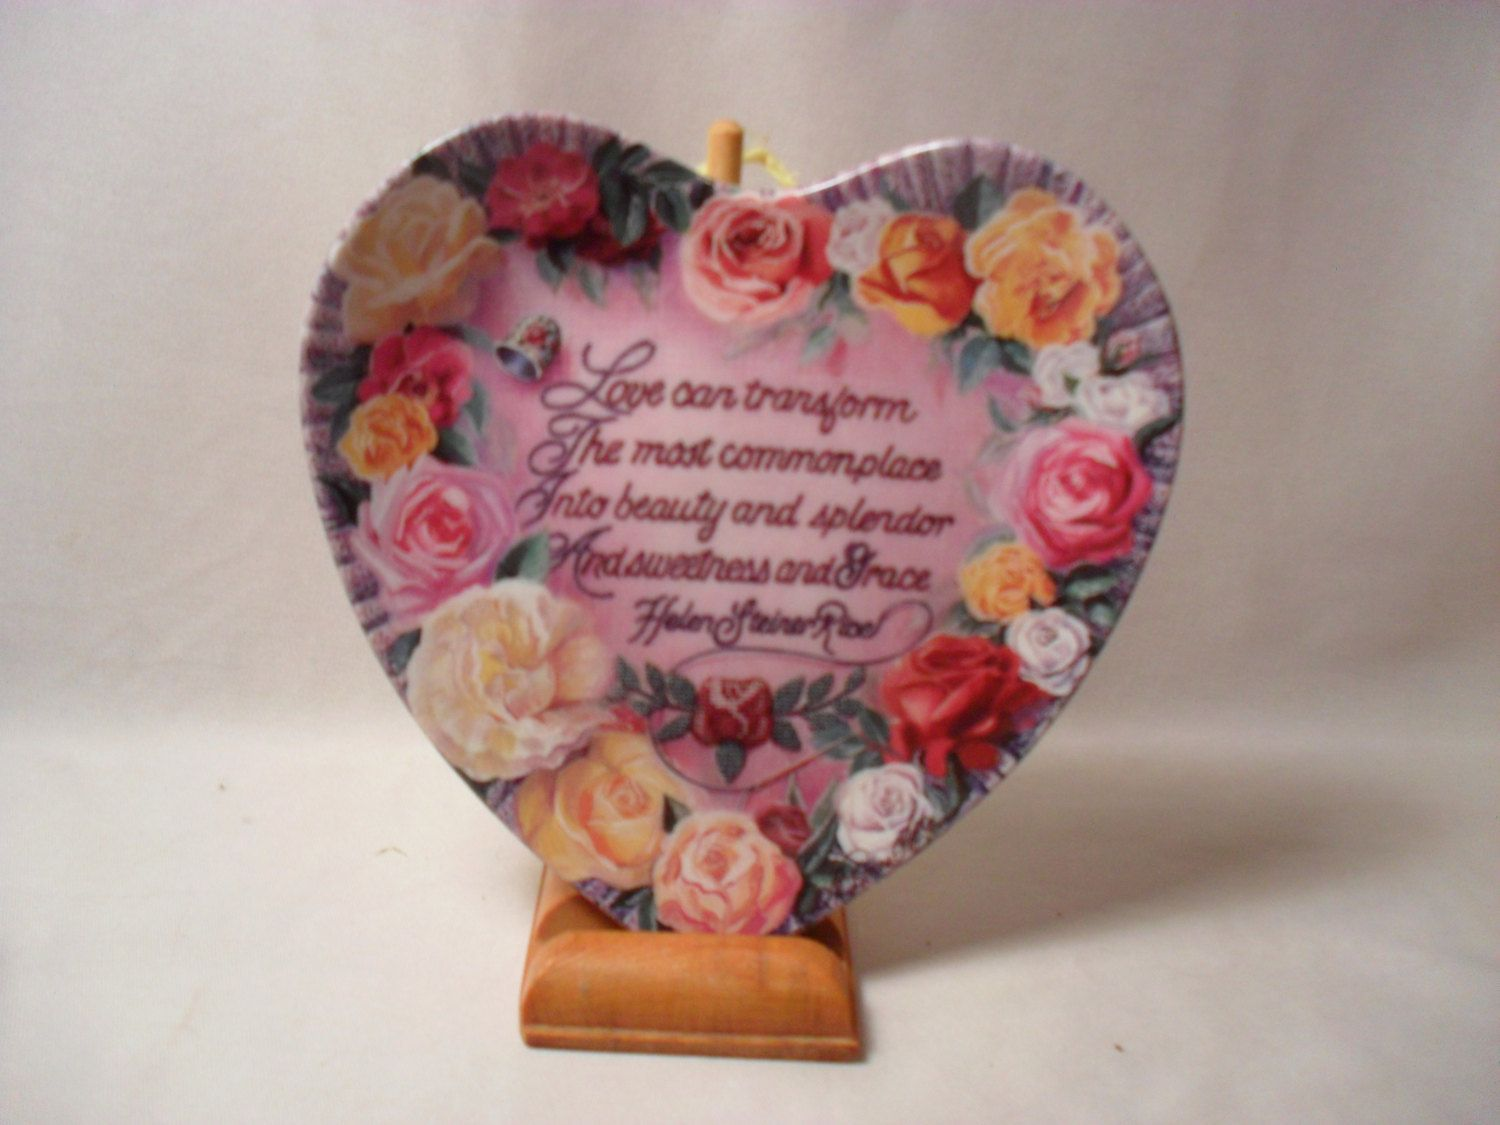 Beauty and Splendor by Renee McGinnis from Loving Hearts Collection Plate by itsfound on Etsy